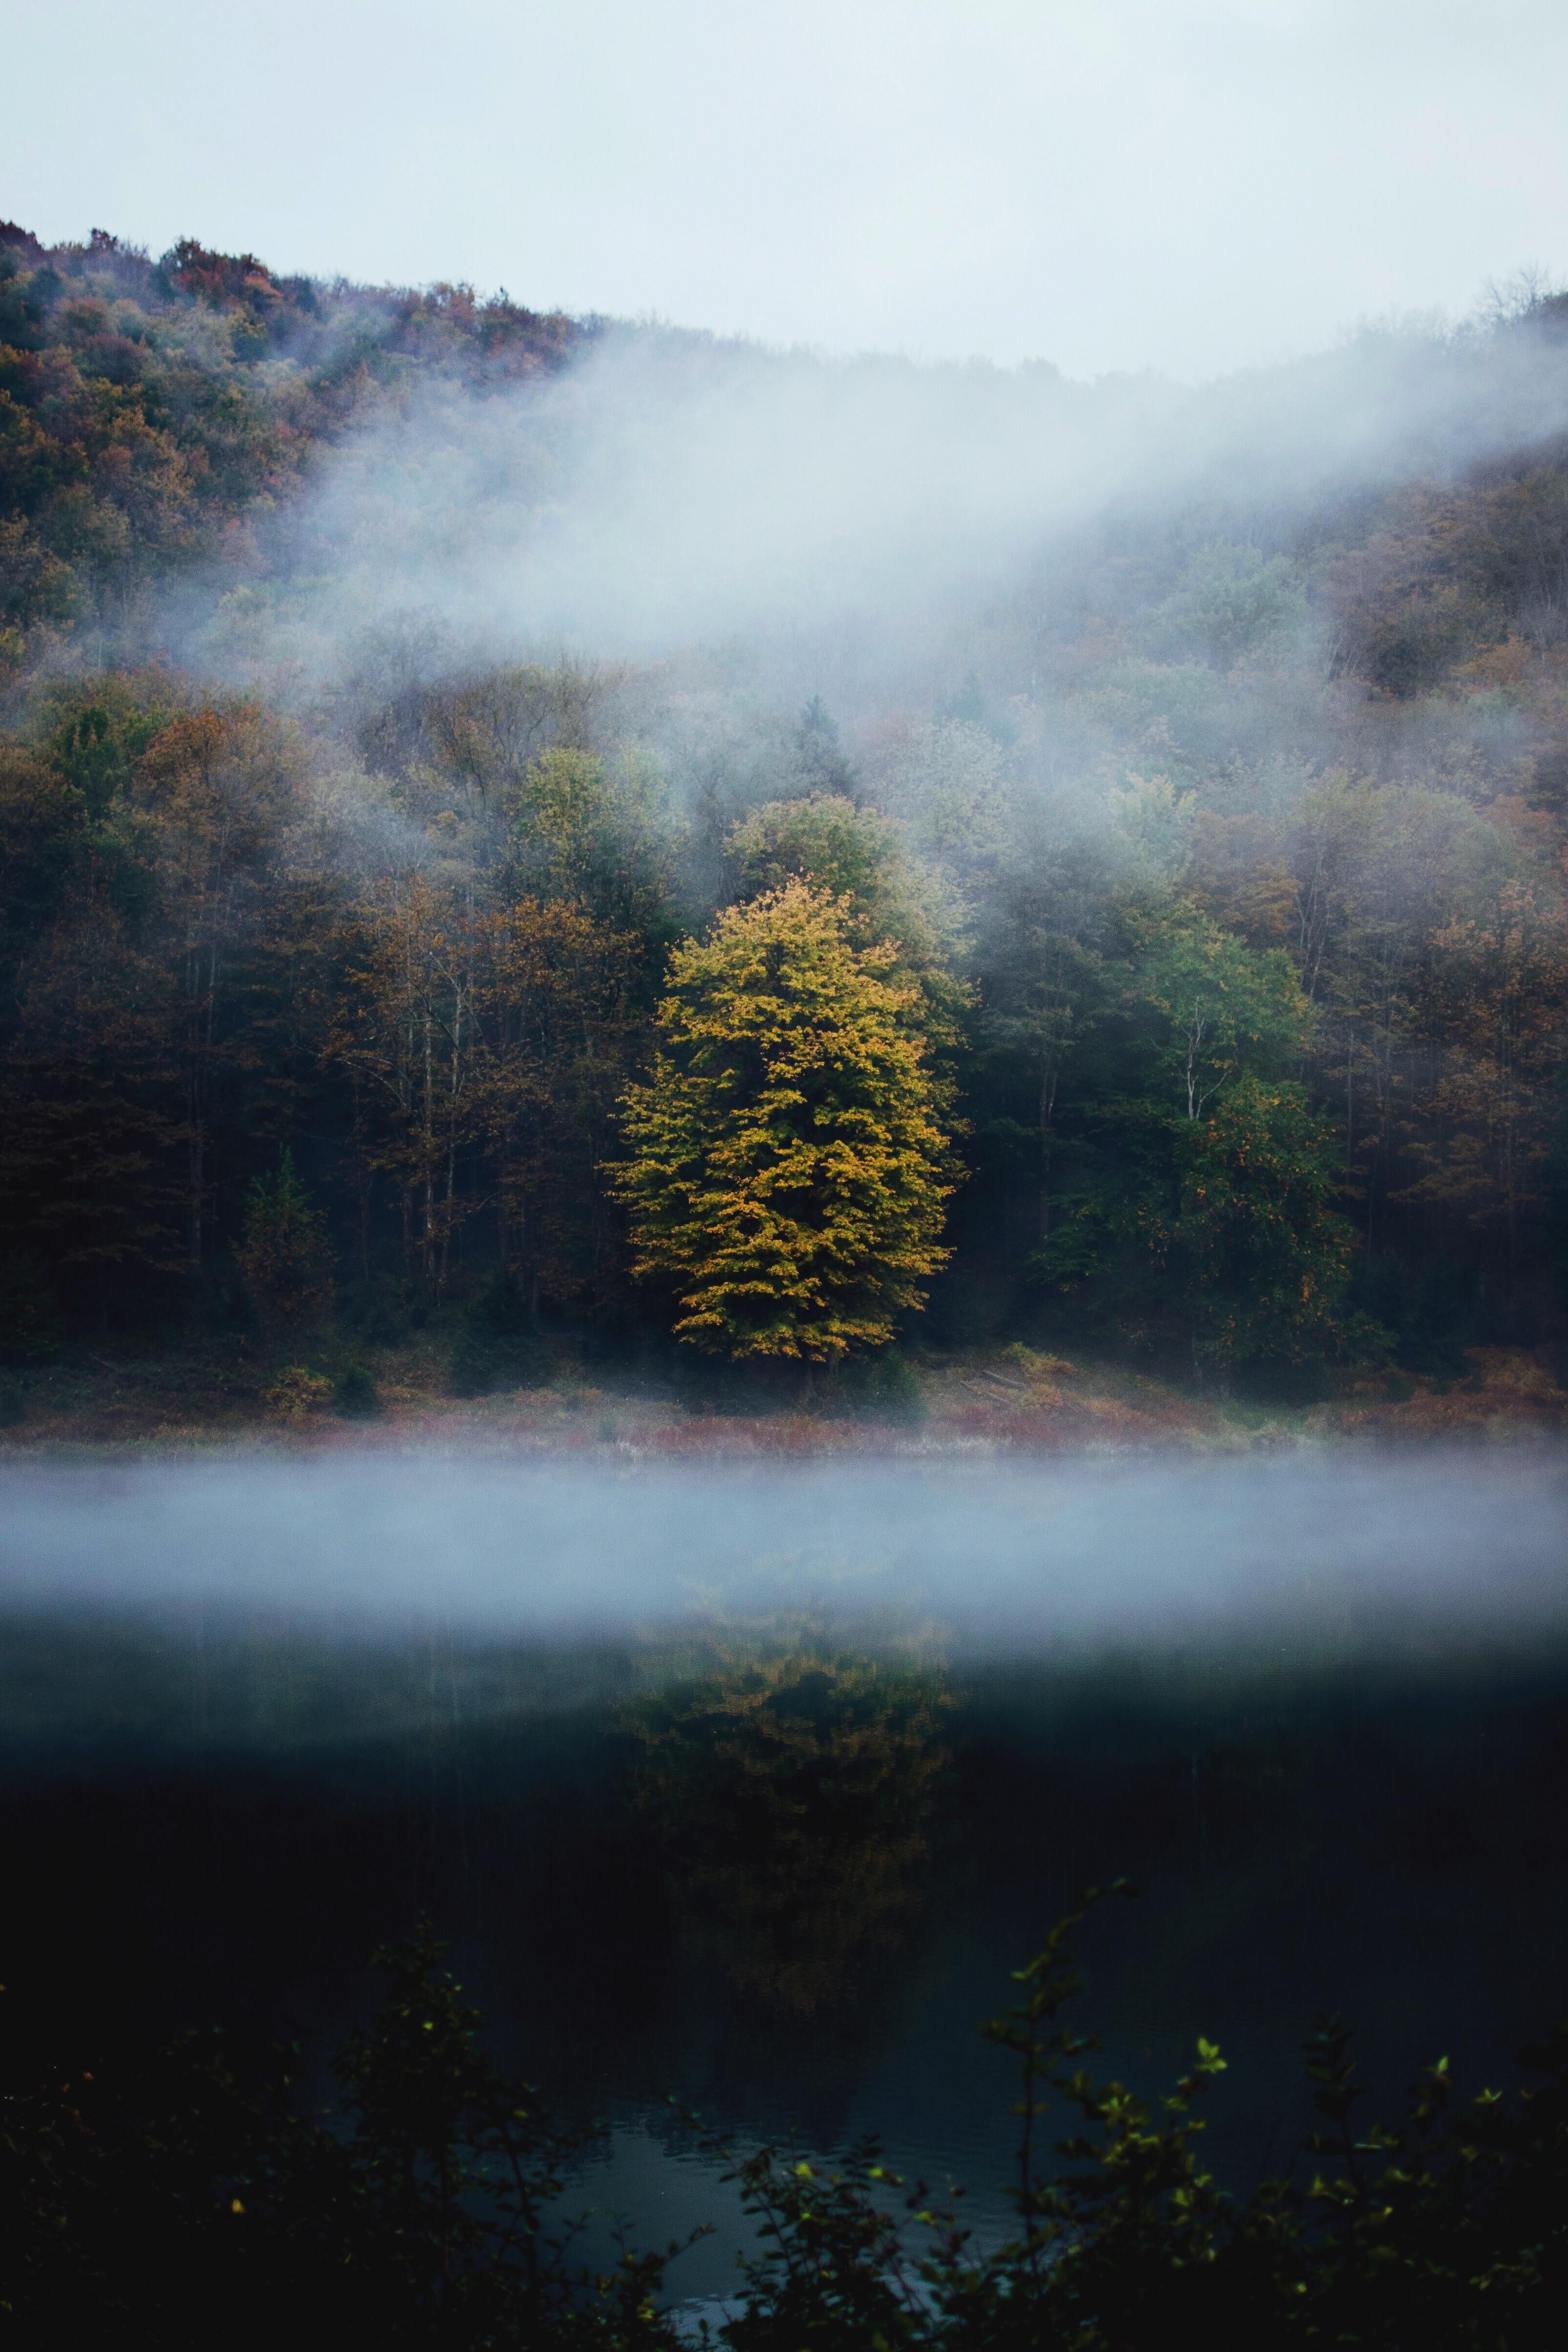 Itap of a tree in a foggy forest by kzarif photos